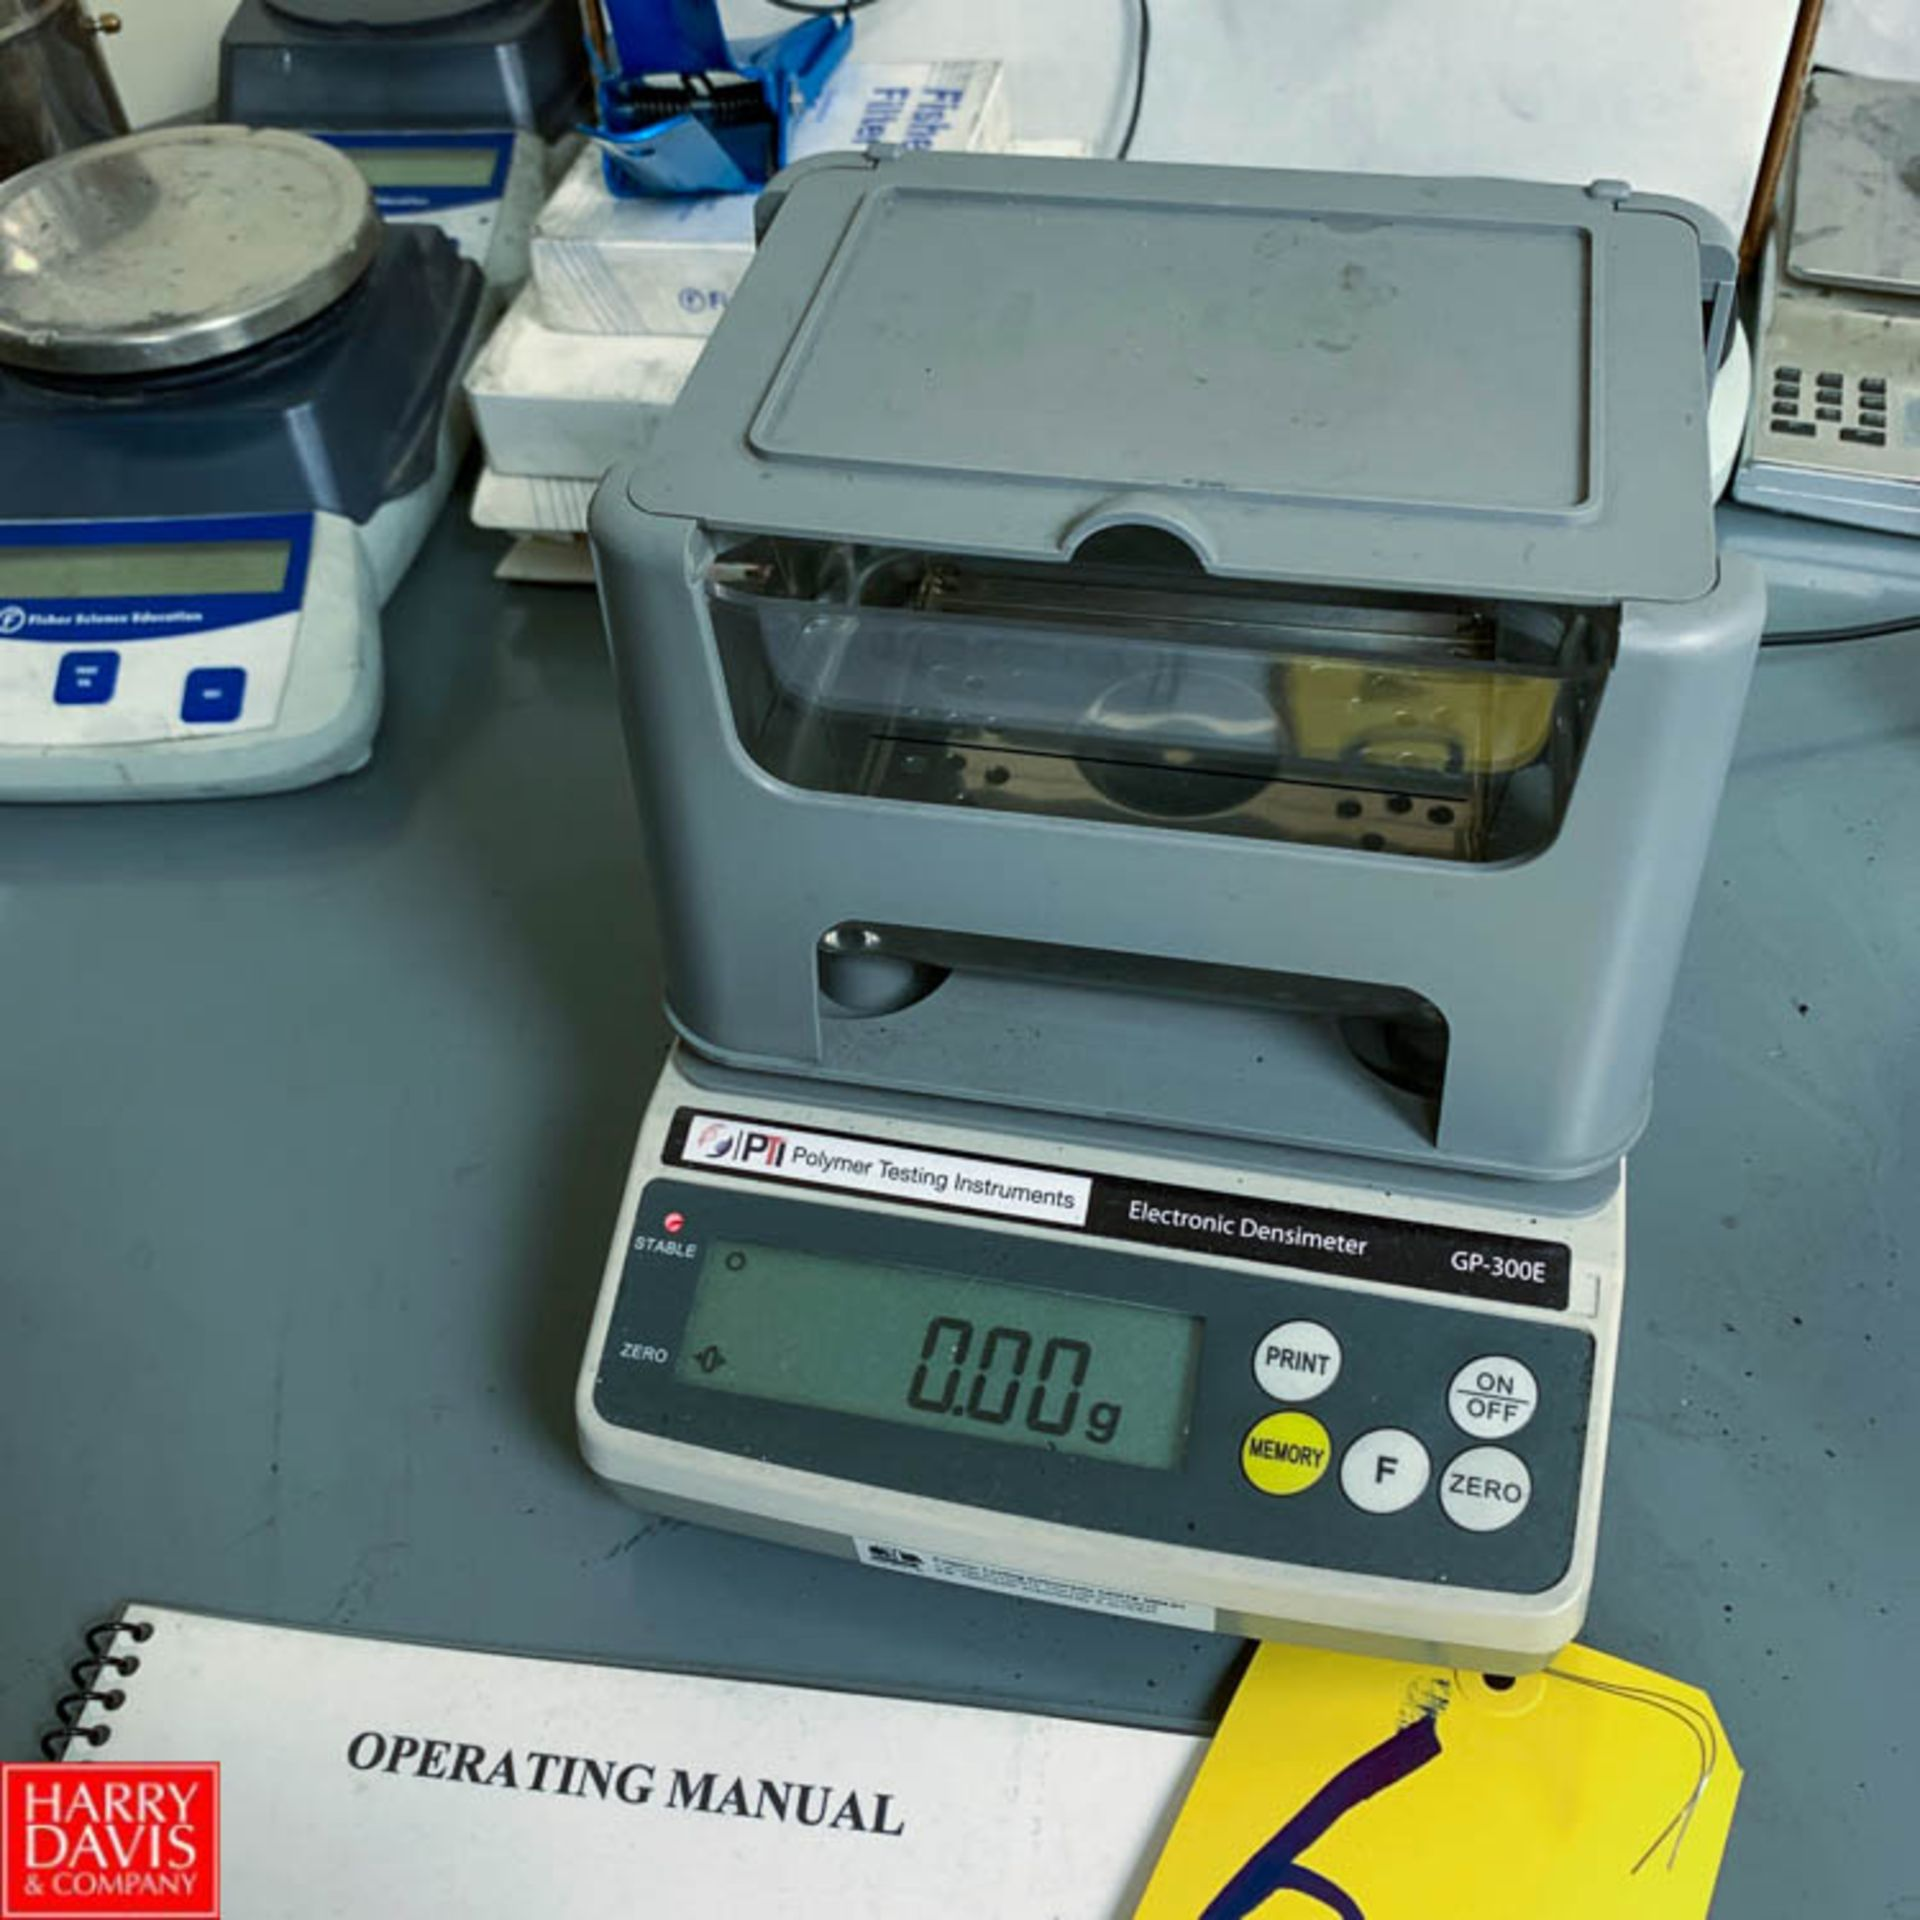 Lot 6 - Polymer Testing Instruments Electronic Densimeter, CP-300 E Series Rigging Fee: 150